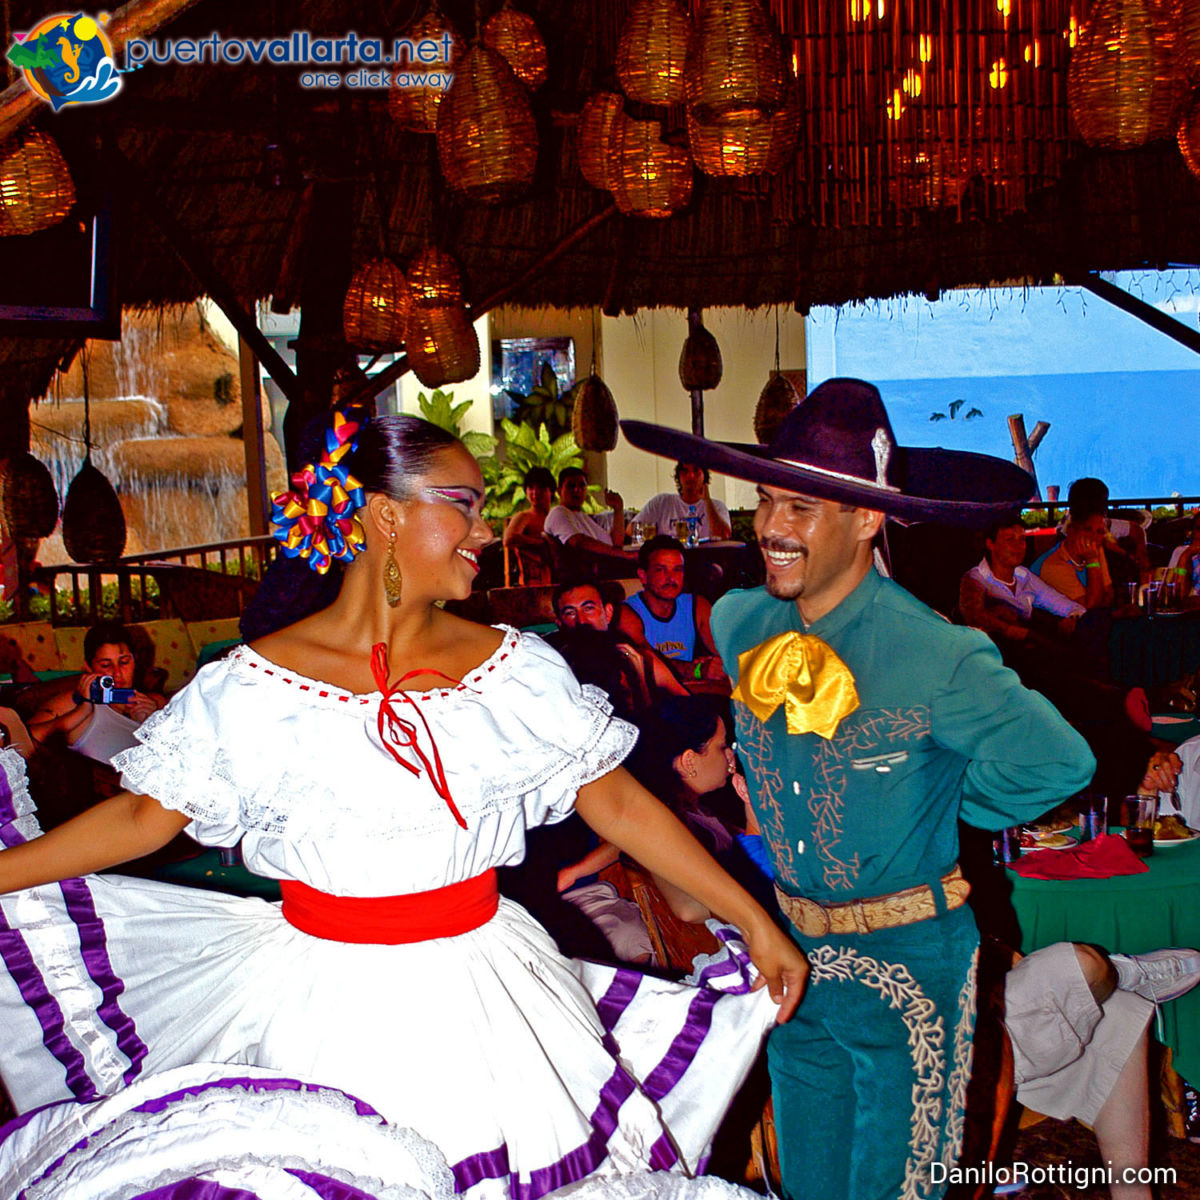 Fiesta Mexicana, traditional Mexican dancers and dress